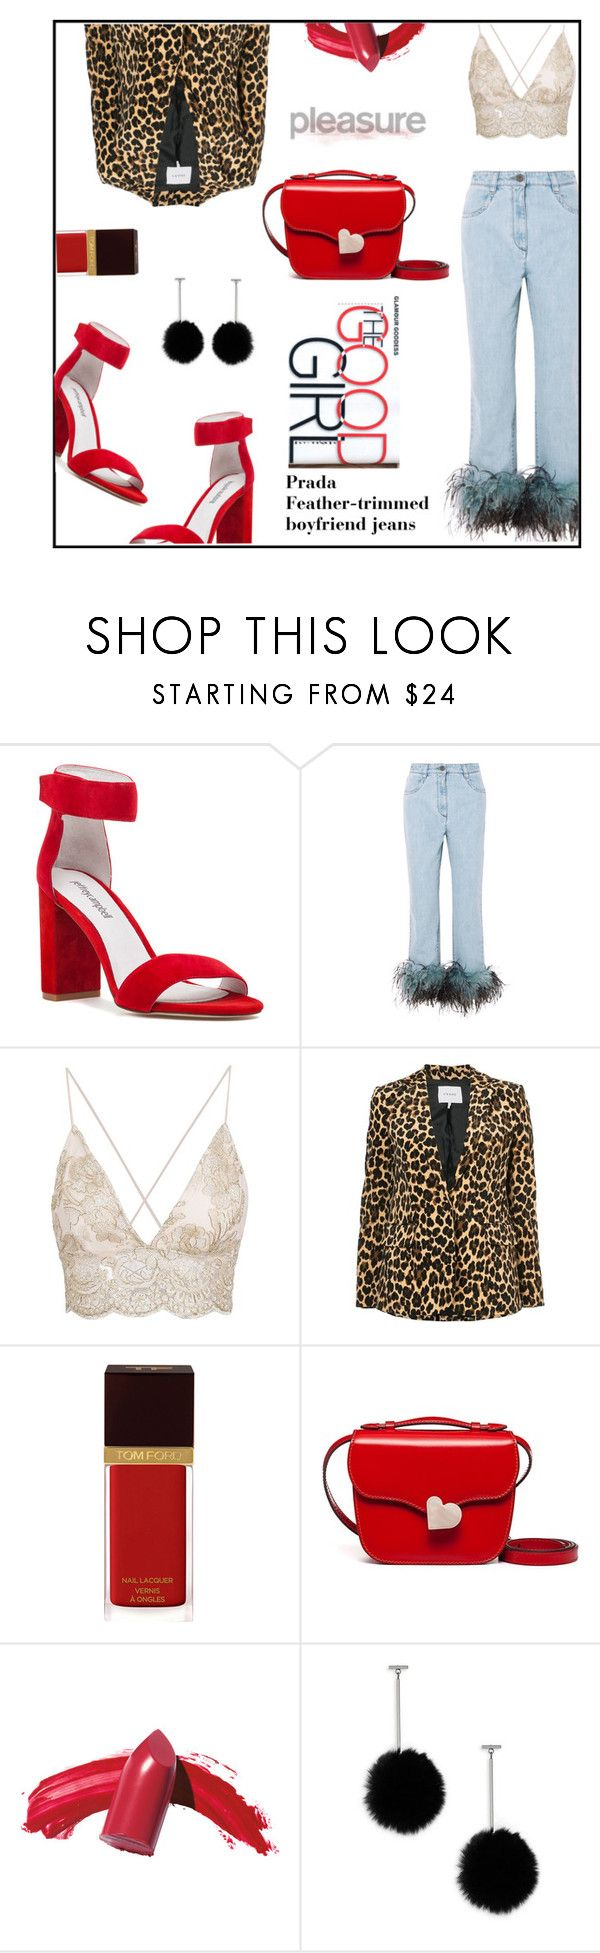 """""""JEANS PRADA"""" by ceci4diplomazy ❤ liked on Polyvore featuring Jeffrey Campbell, Prada, Frame, Tom Ford, Marni, Tuleste and polyvoreeditorial"""